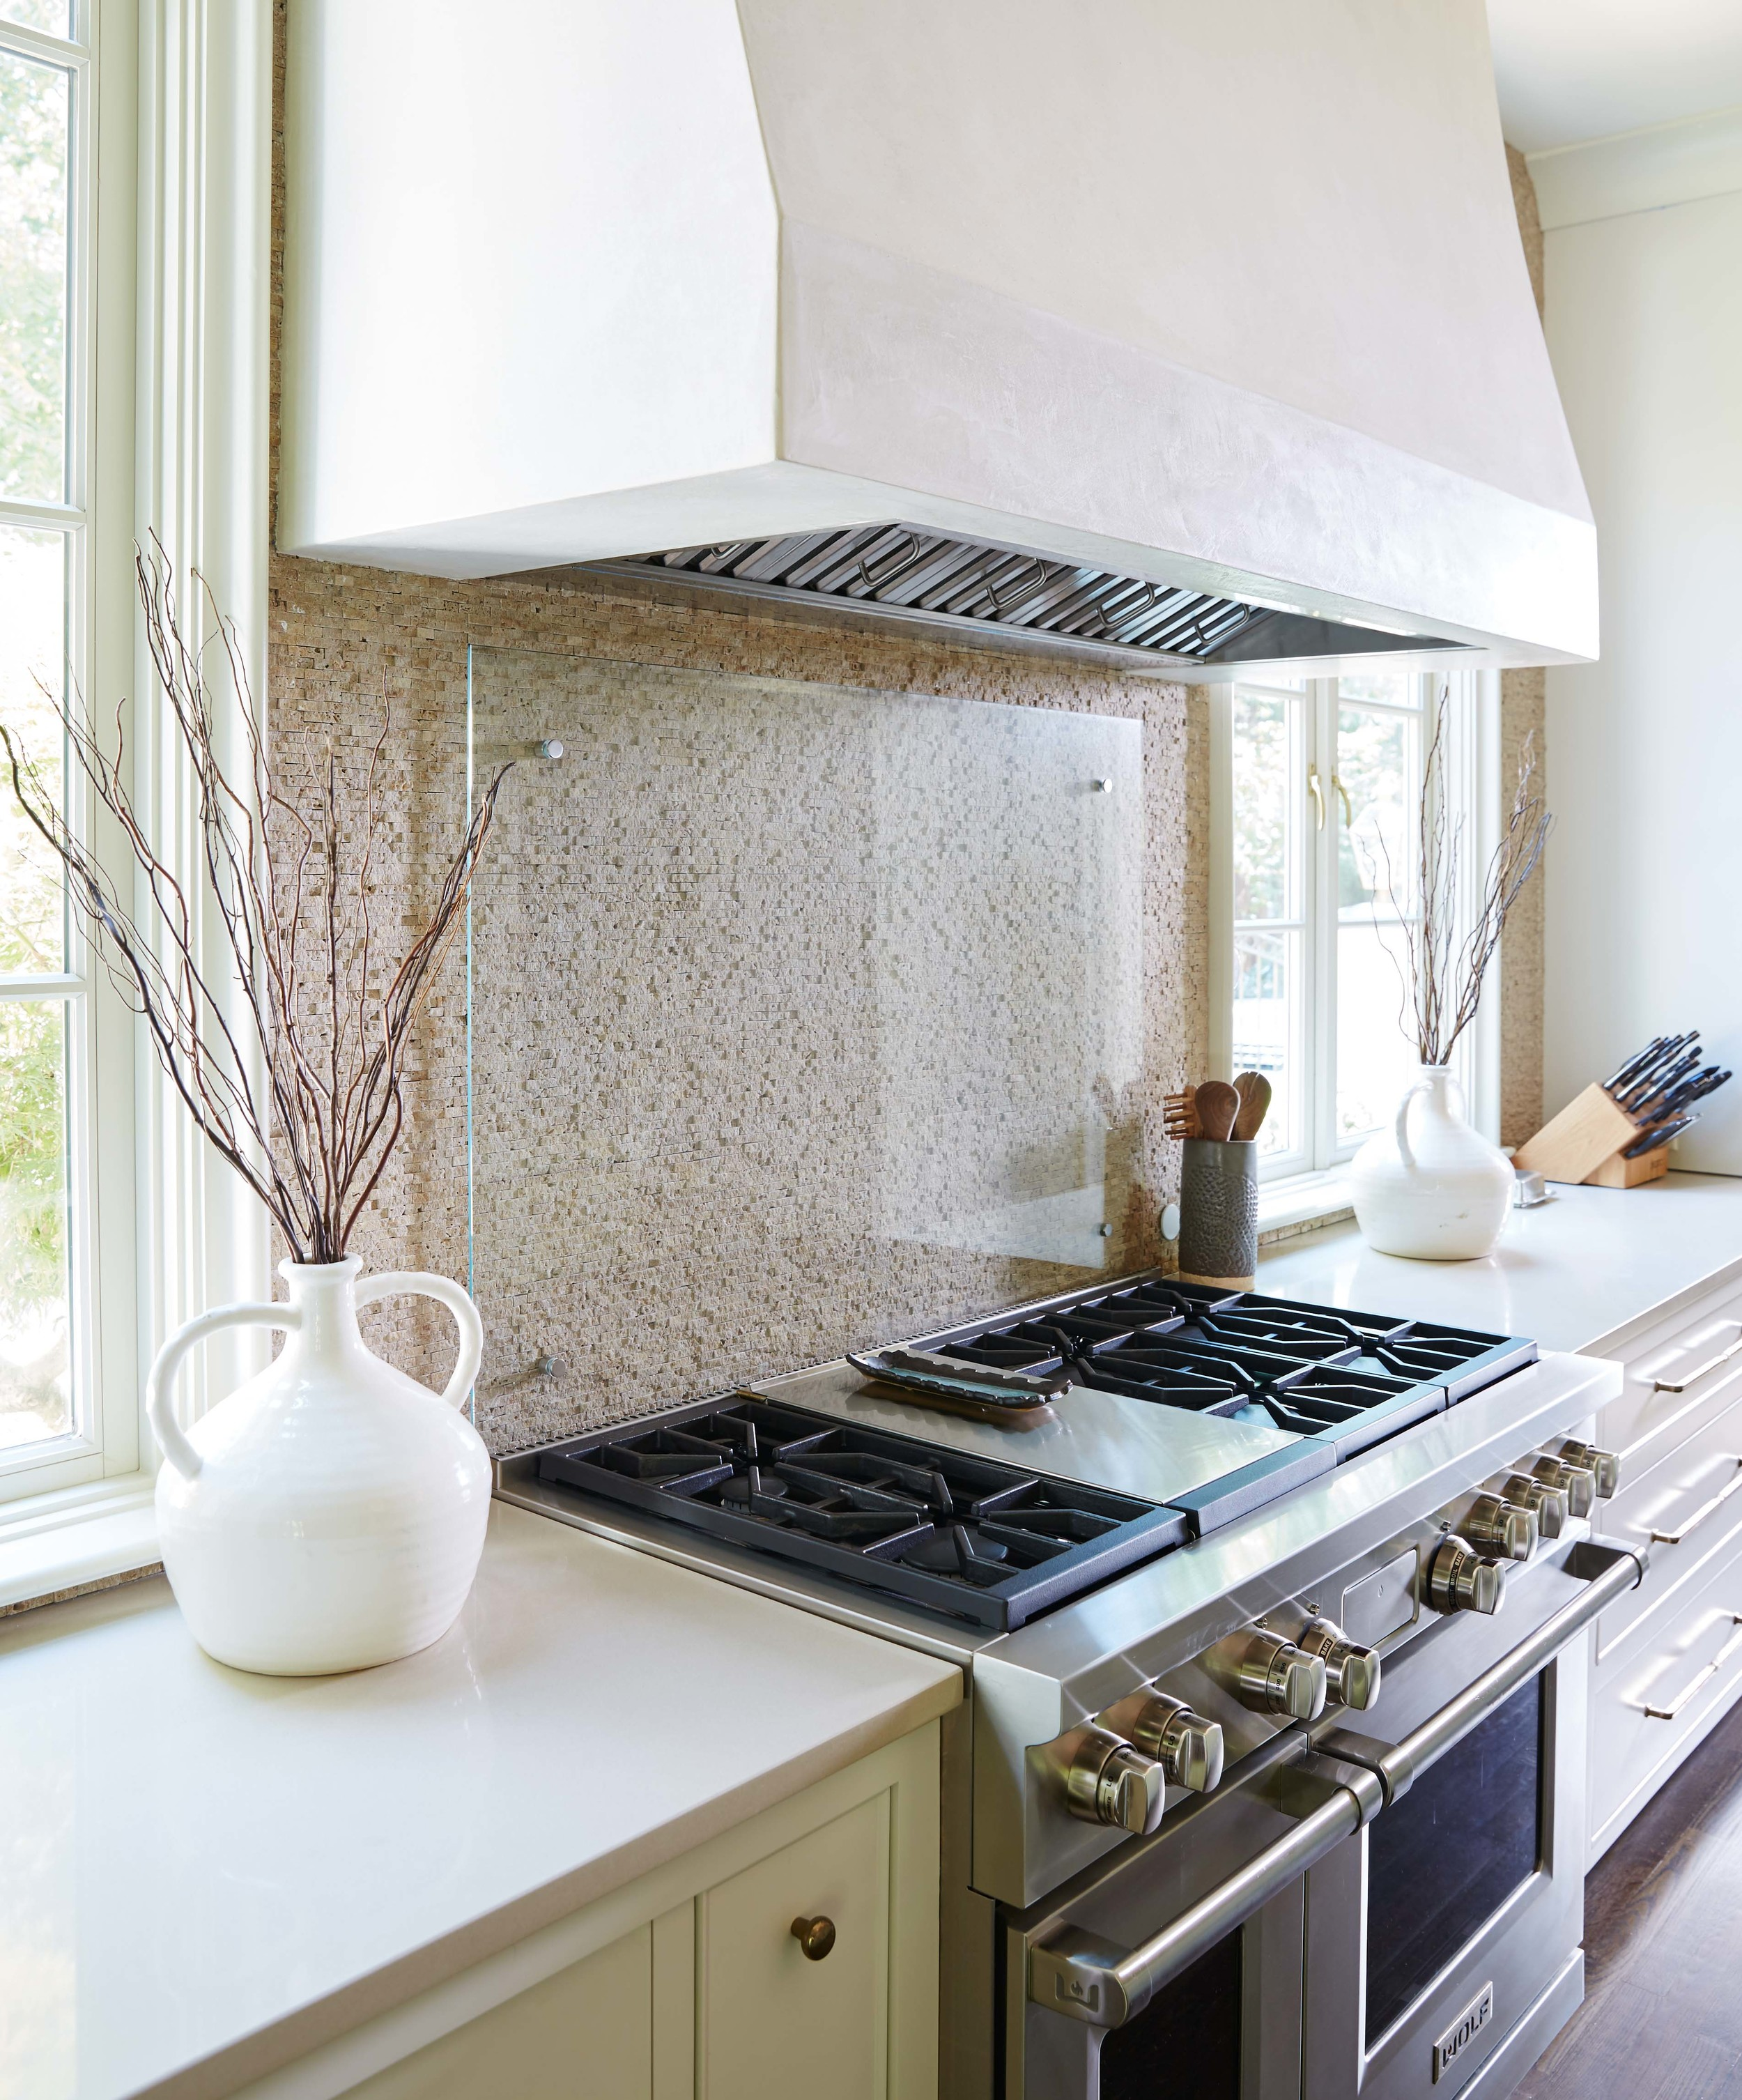 Coker_Backsplash_Detail.jpg